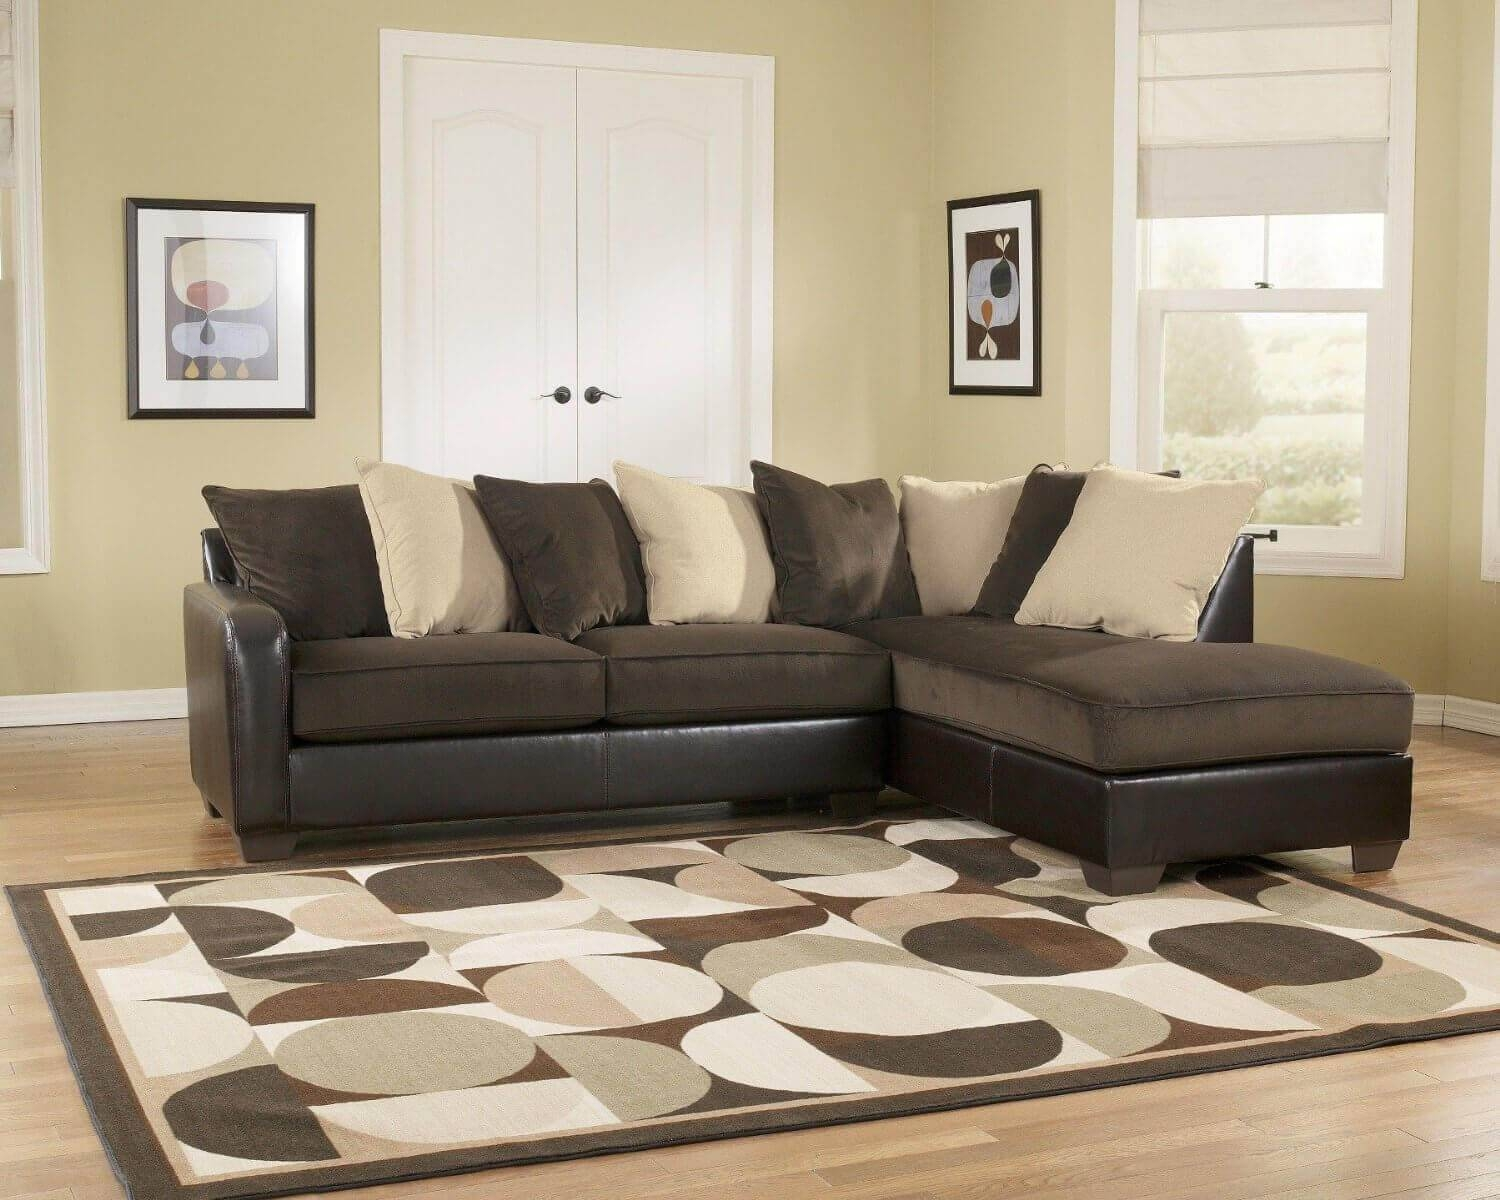 100 Beautiful Sectional Sofas Under $1,000 inside Wide Sectional Sofa (Image 1 of 25)